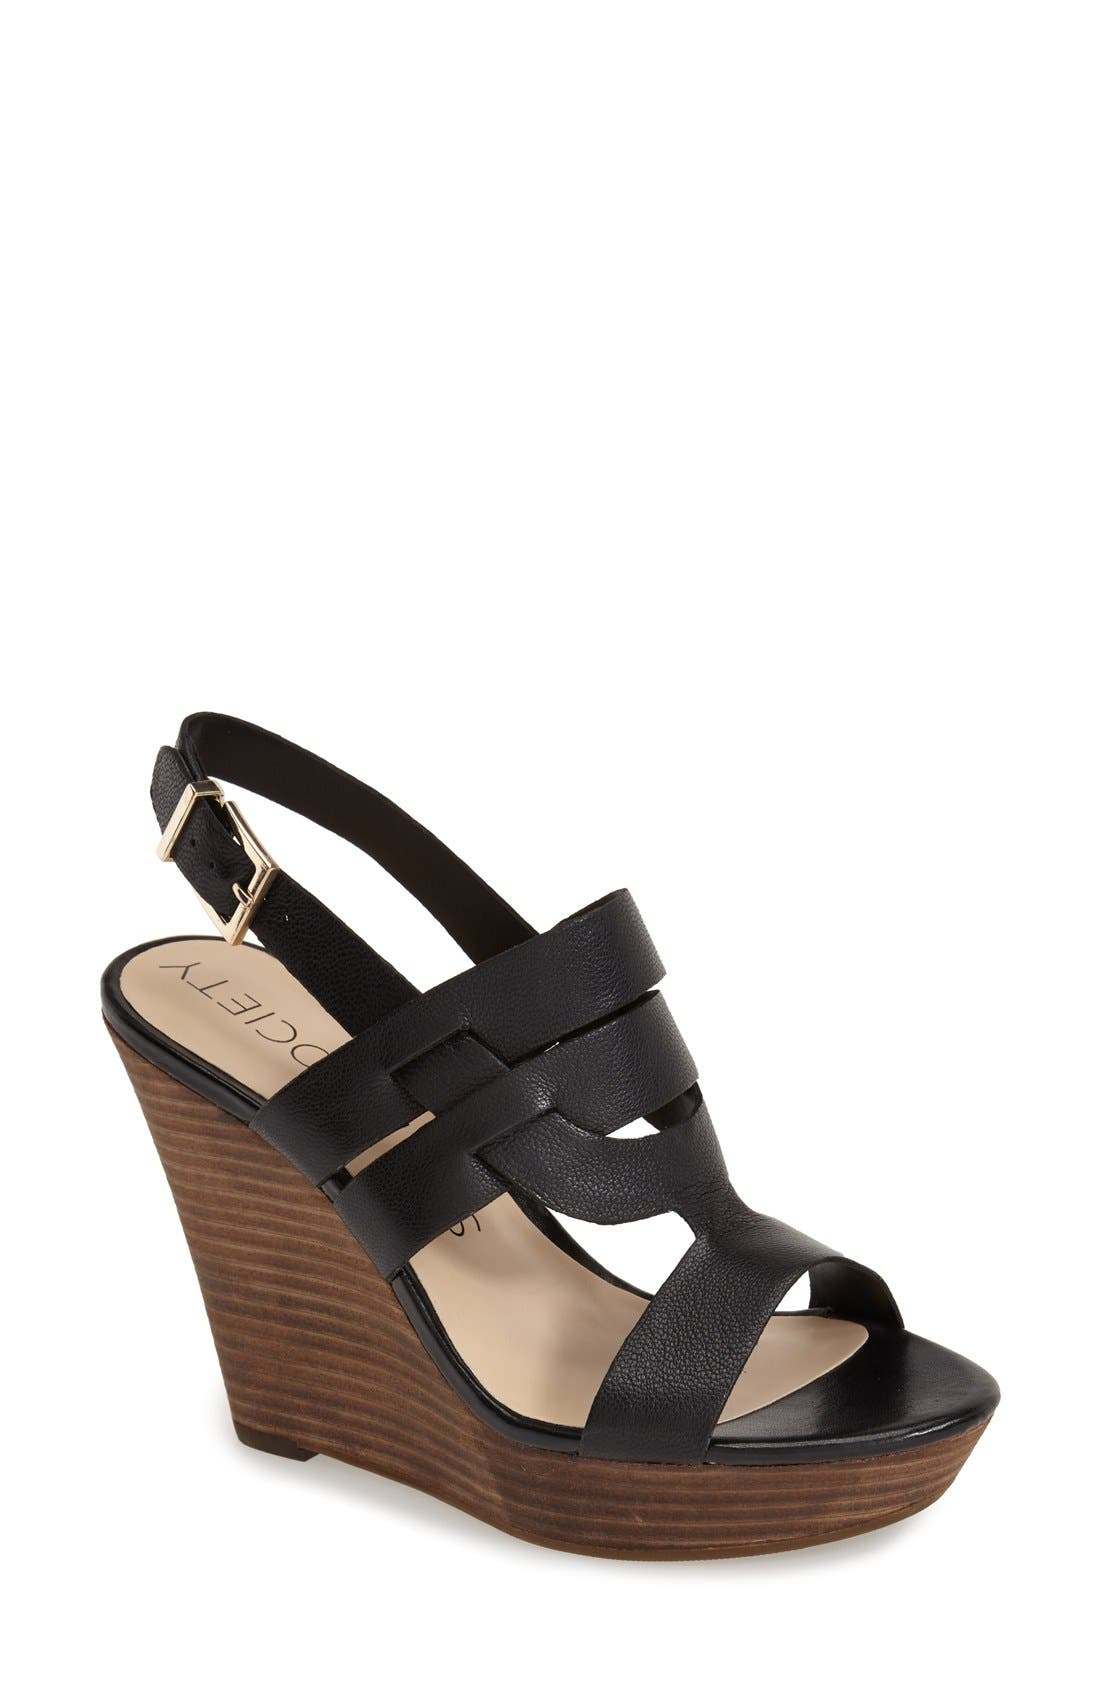 Alternate Image 1 Selected - Sole Society 'Jenny' Slingback Wedge Sandal (Women)